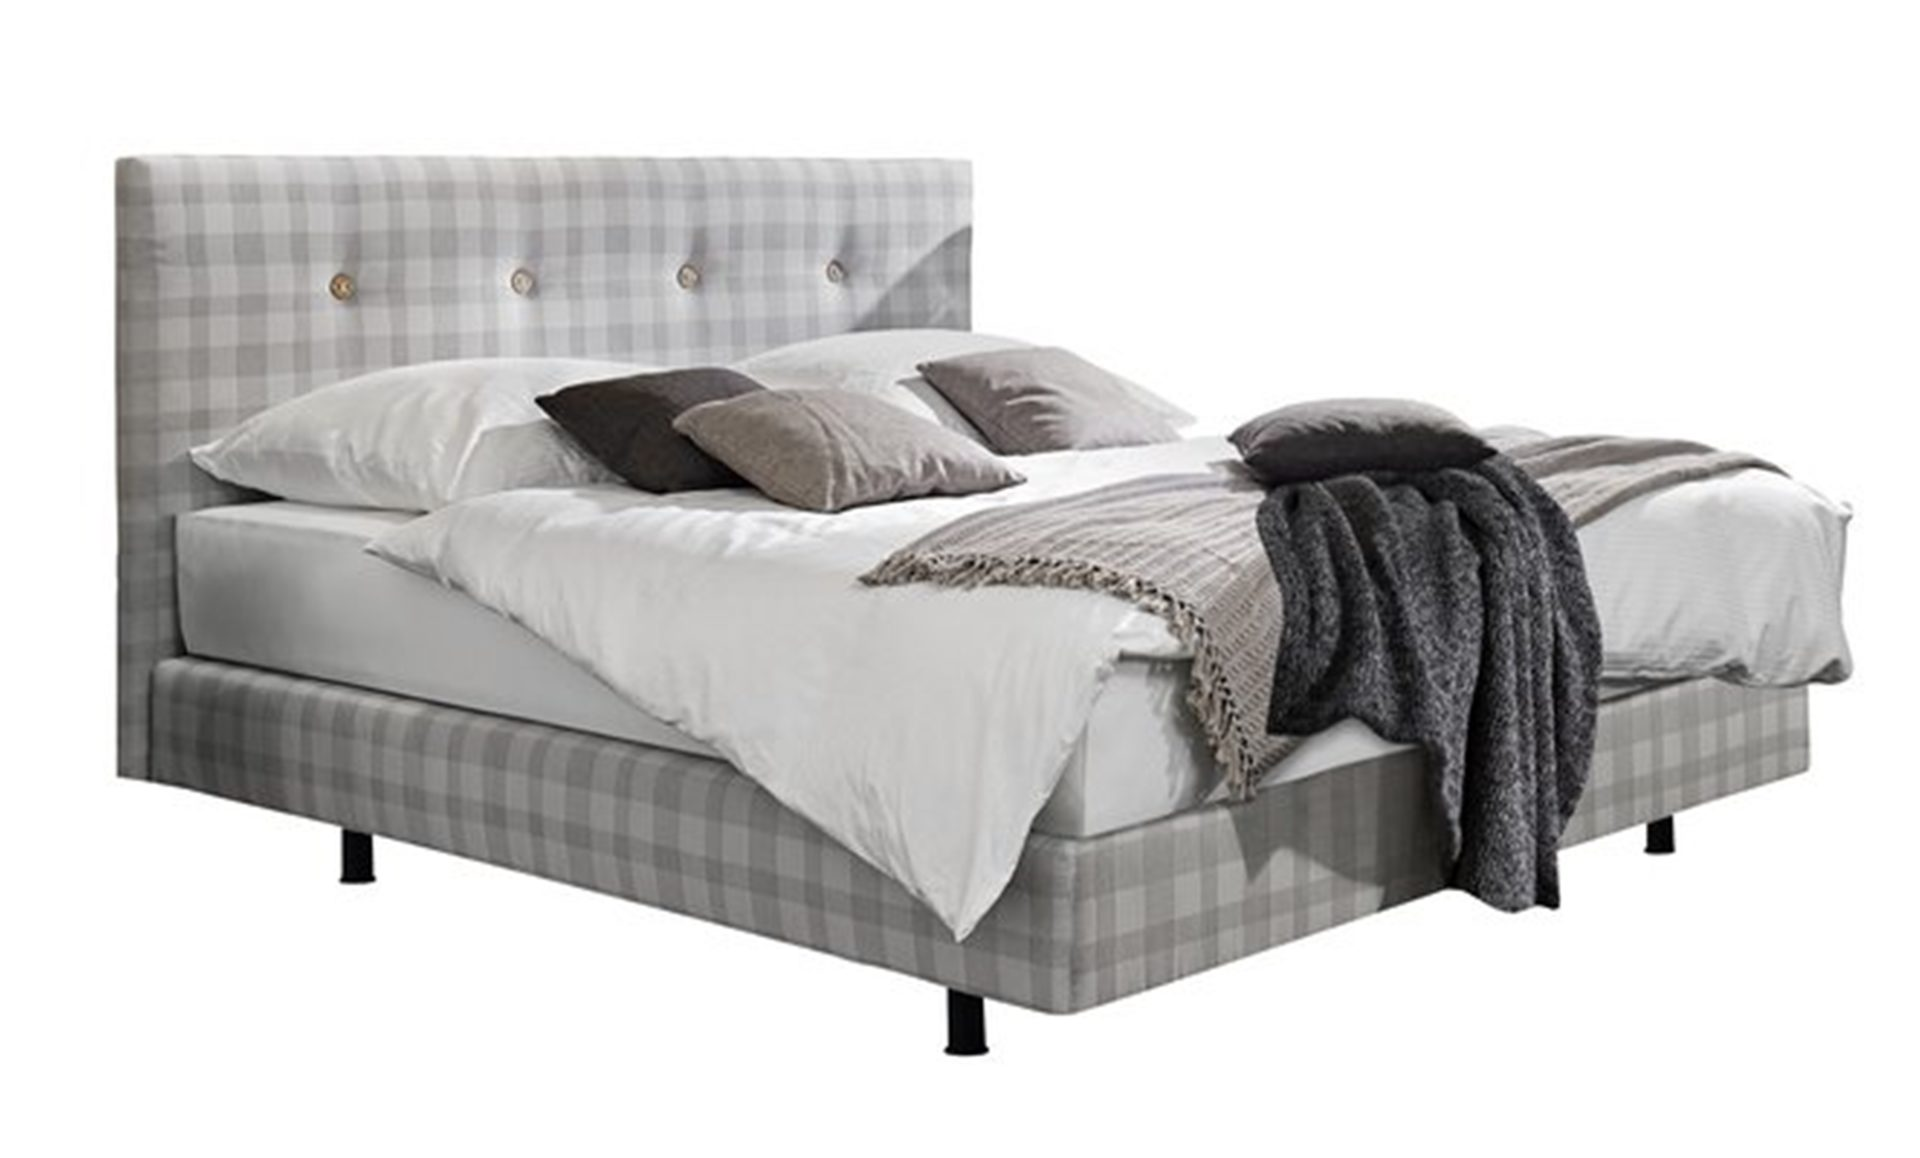 Schlafzimmer Set Boxspringbett: Arte M Boxspringbett button ...